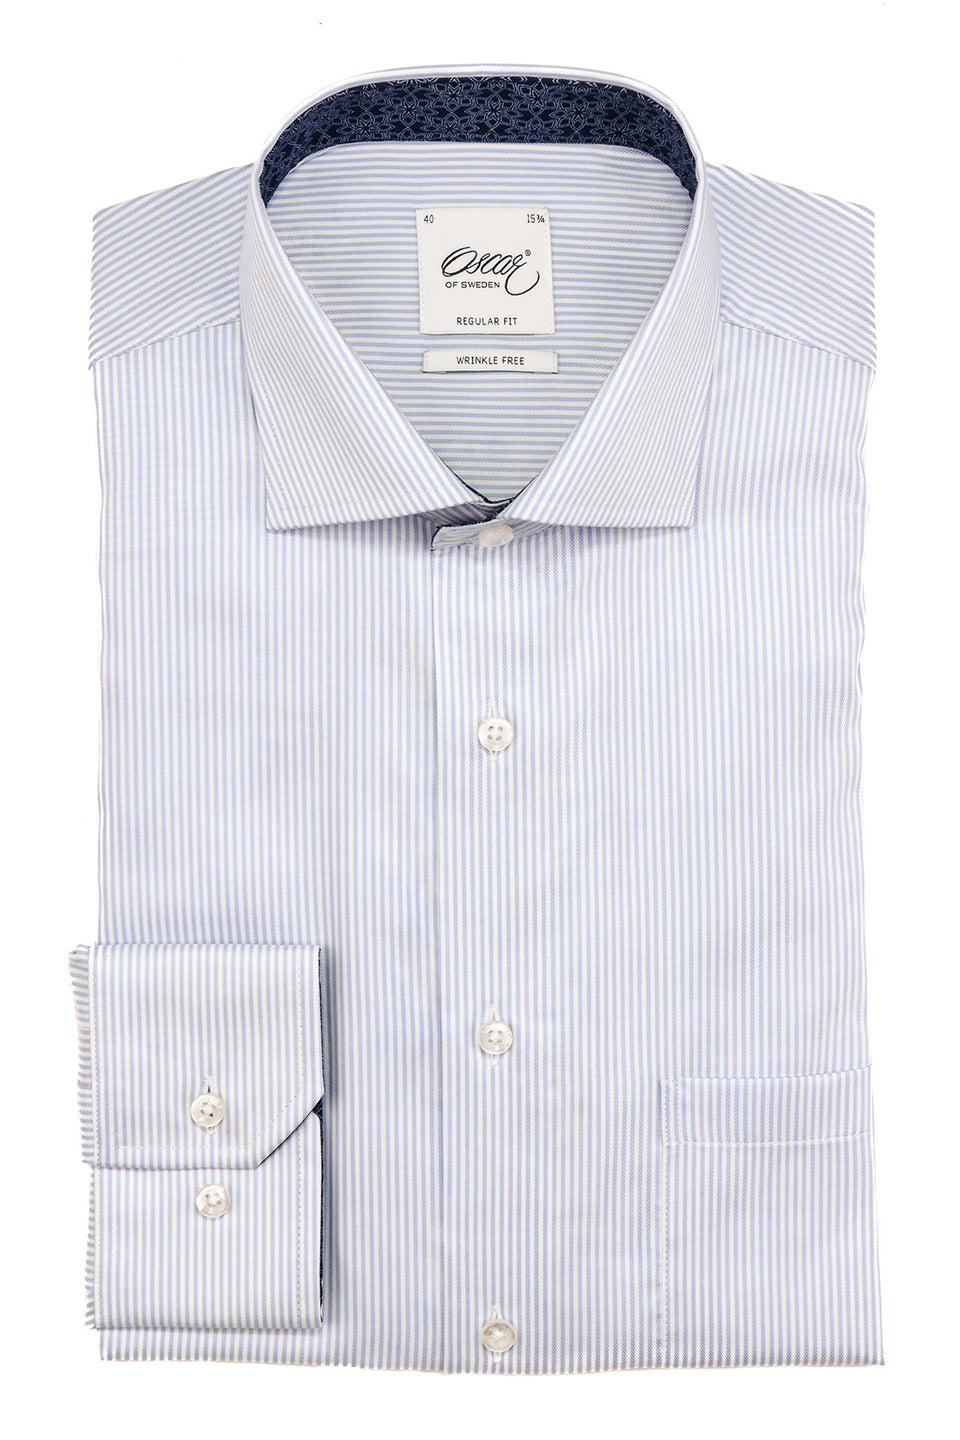 Light blue striped regular fit shirt